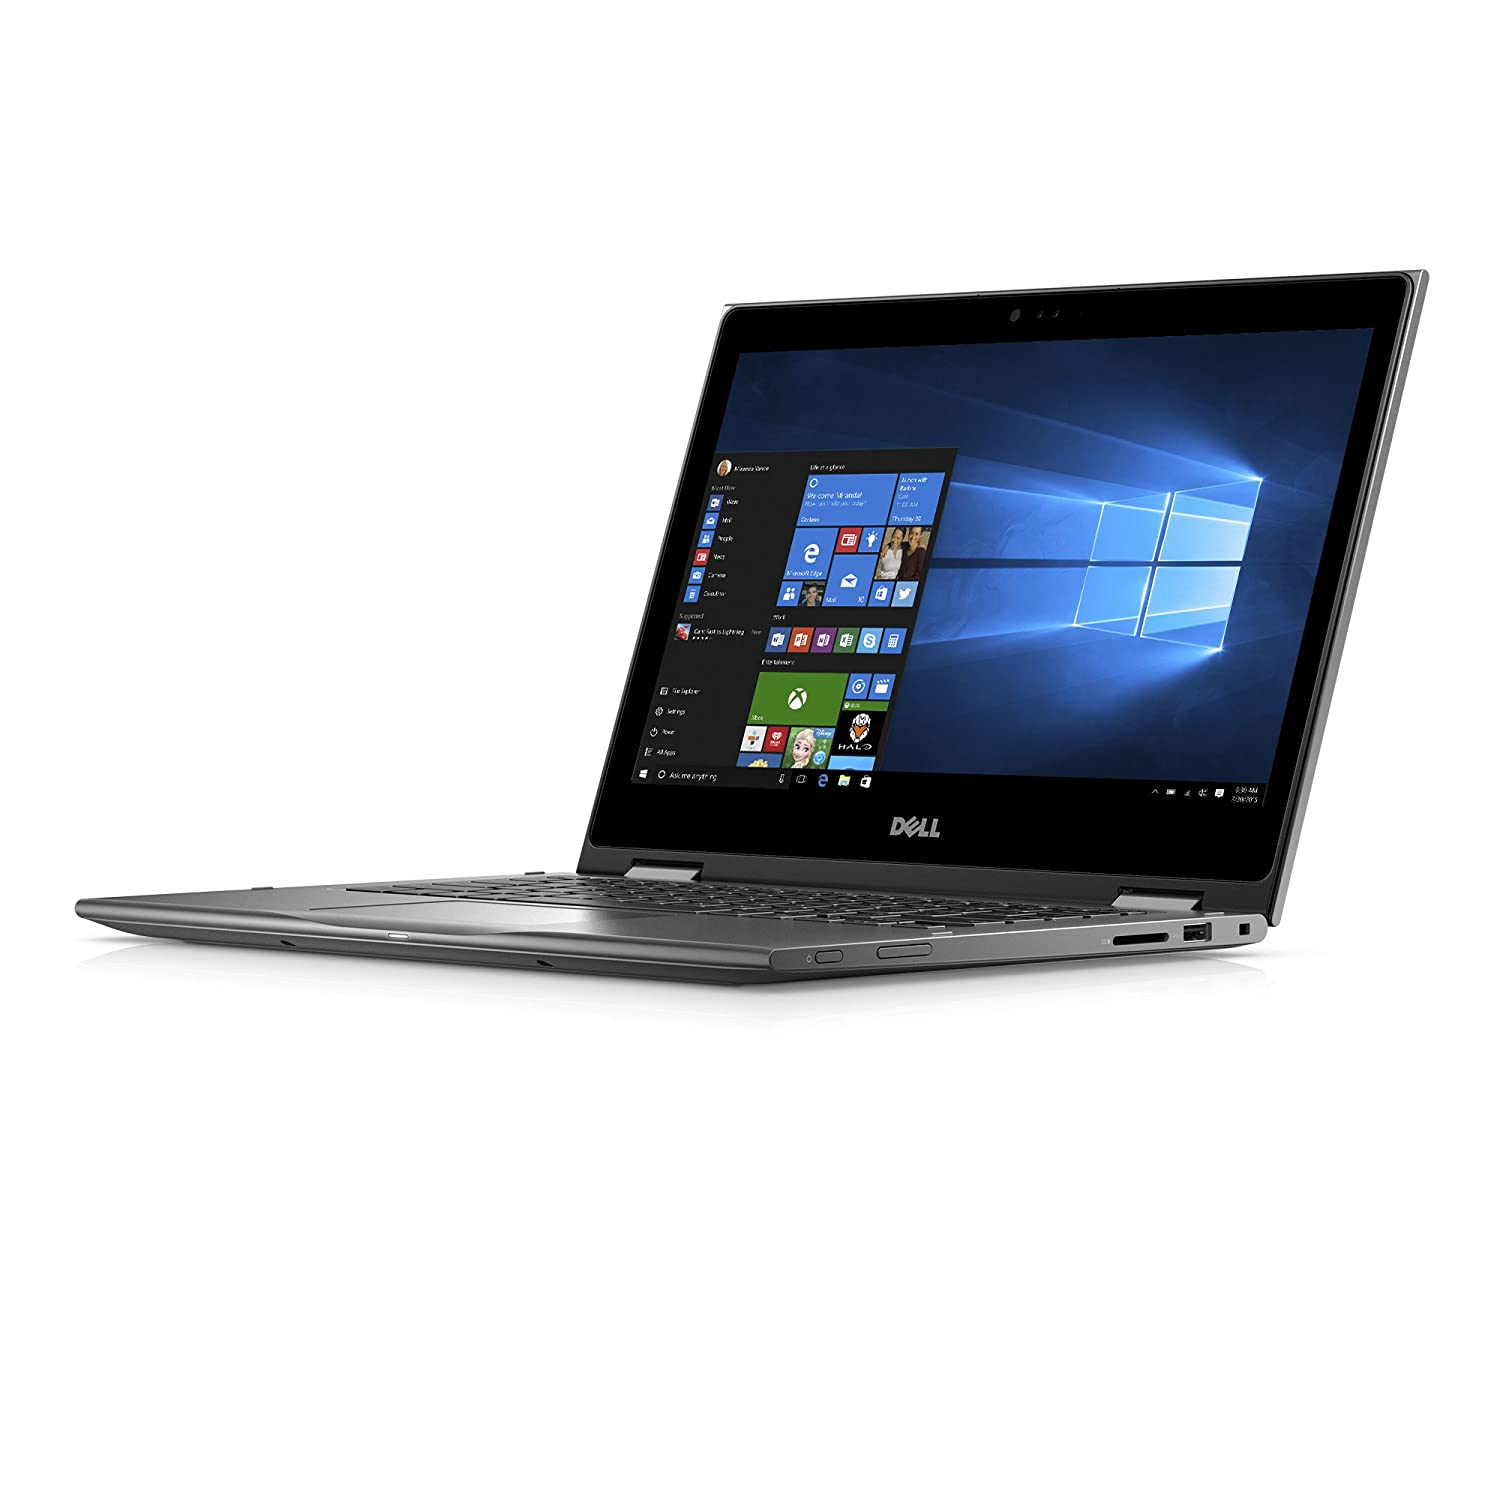 """Amazon.com: Dell Inspiron i5378-4314GRY 13.3"""" FHD 2-in-1 Laptop (7th  Generation Intel Core i5, 8GB RAM, 256 SSD HDD): Computers & Accessories"""